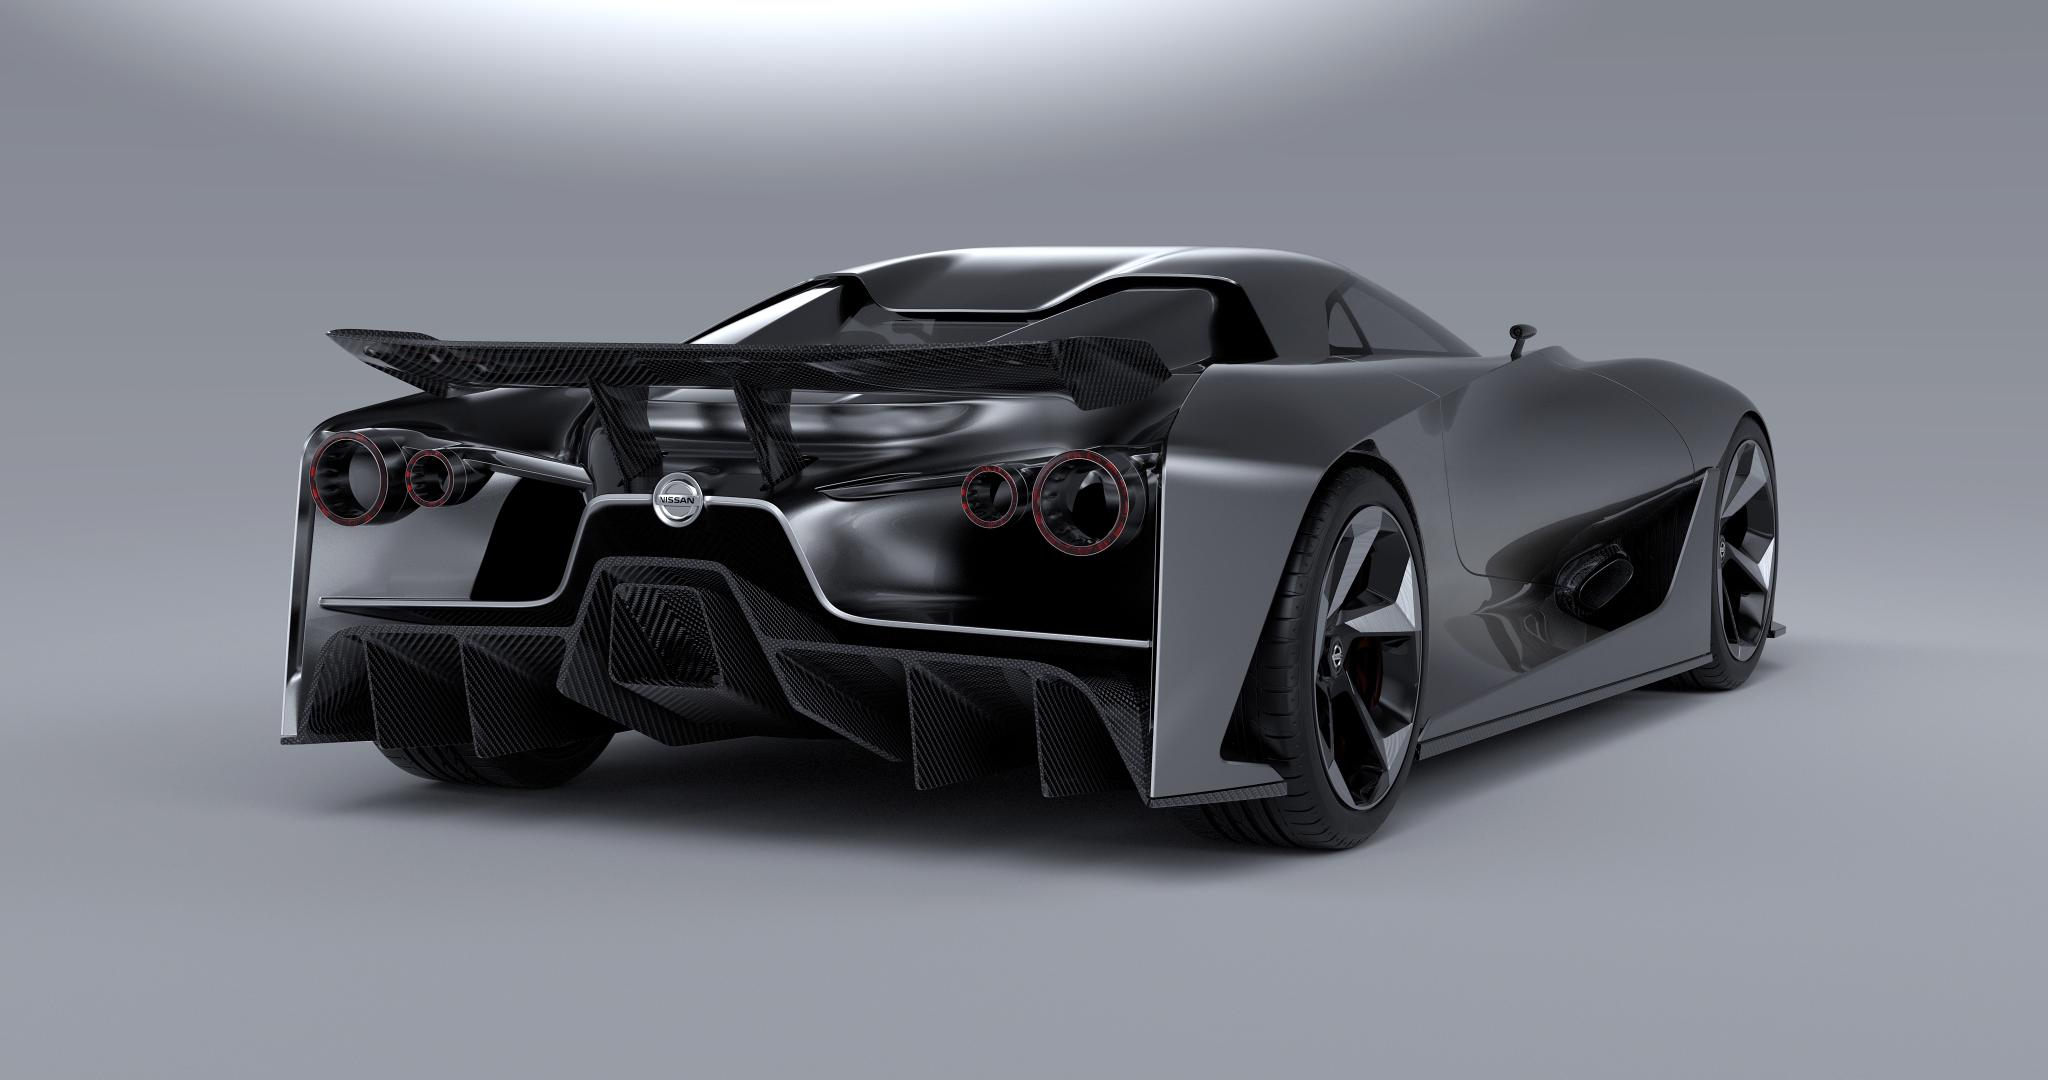 New Nissan Gt R R36 To Be The Hottest Super Sports Car In World